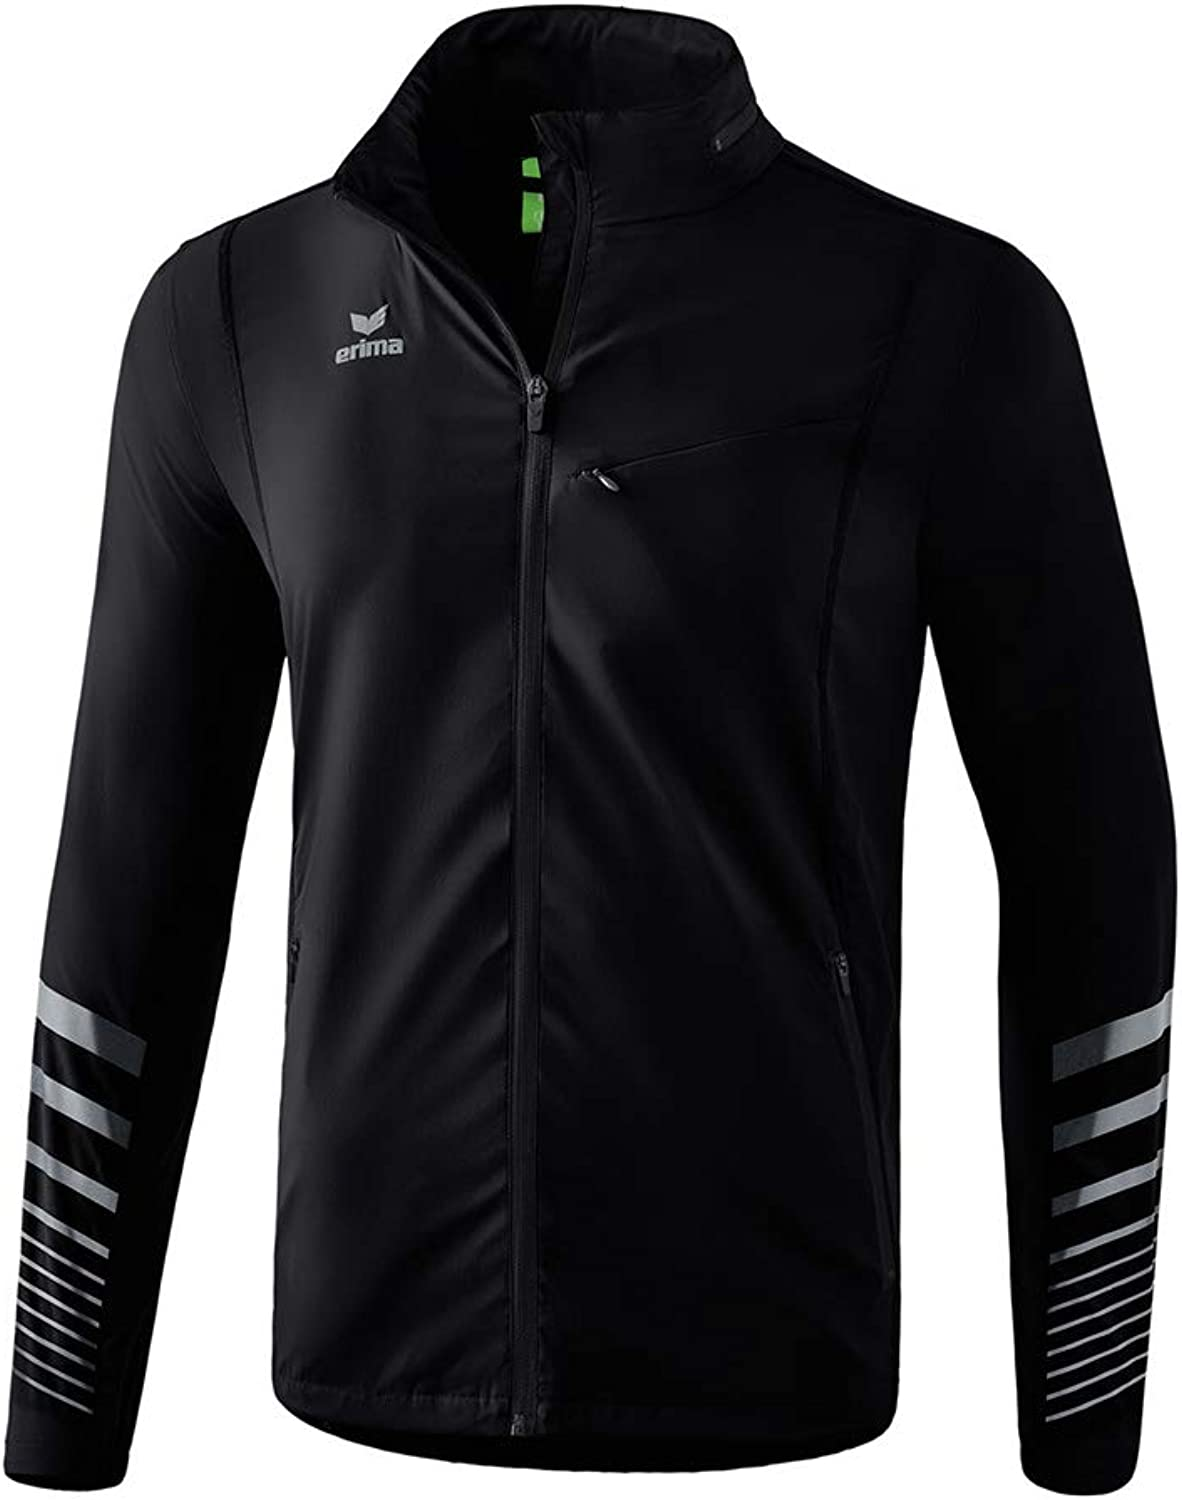 Erima Men's Race Line 2.0 Running Jacket